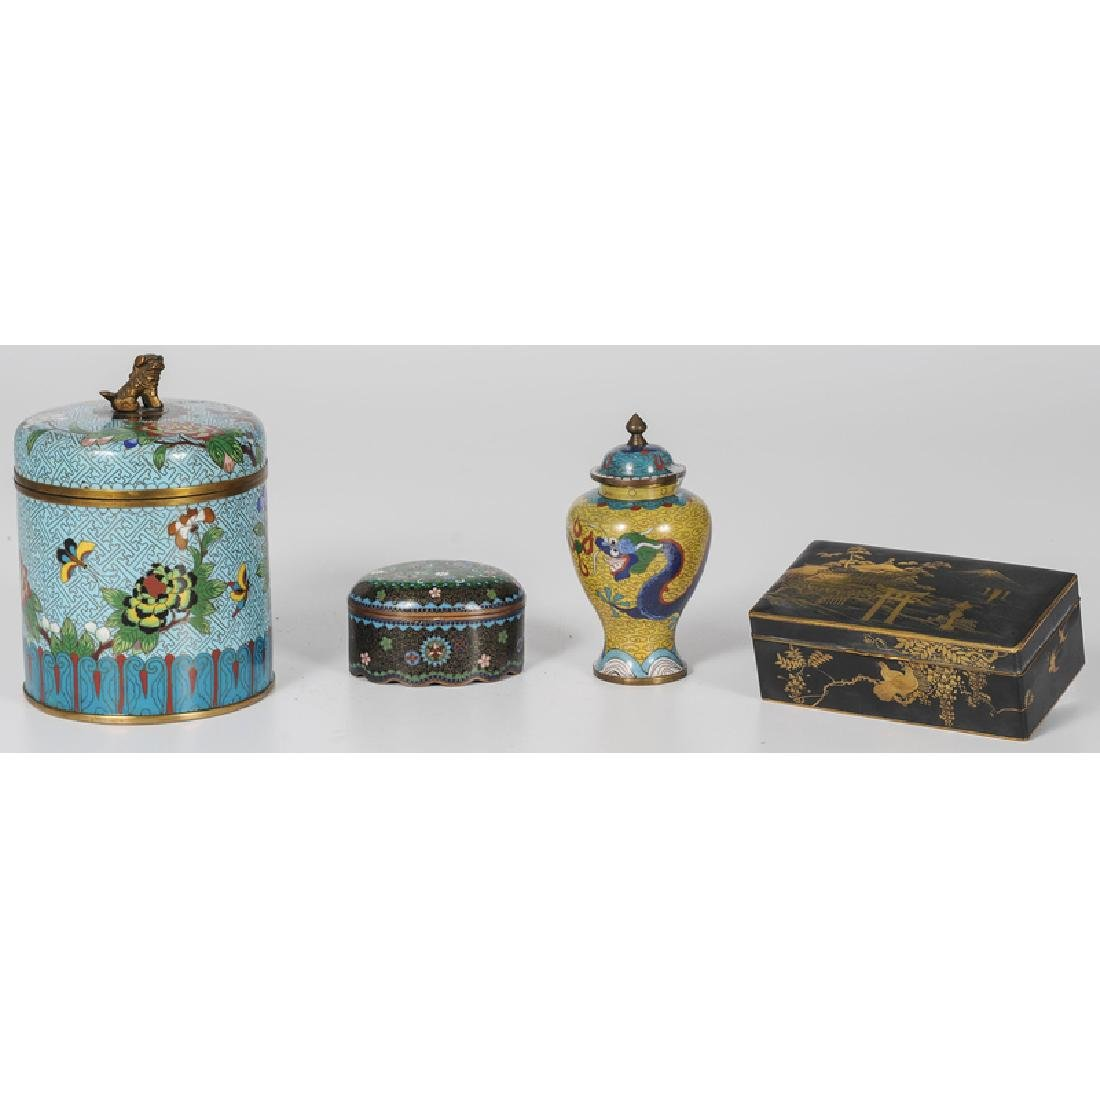 Chinese Cloisonné and Japanese Komai Vessels